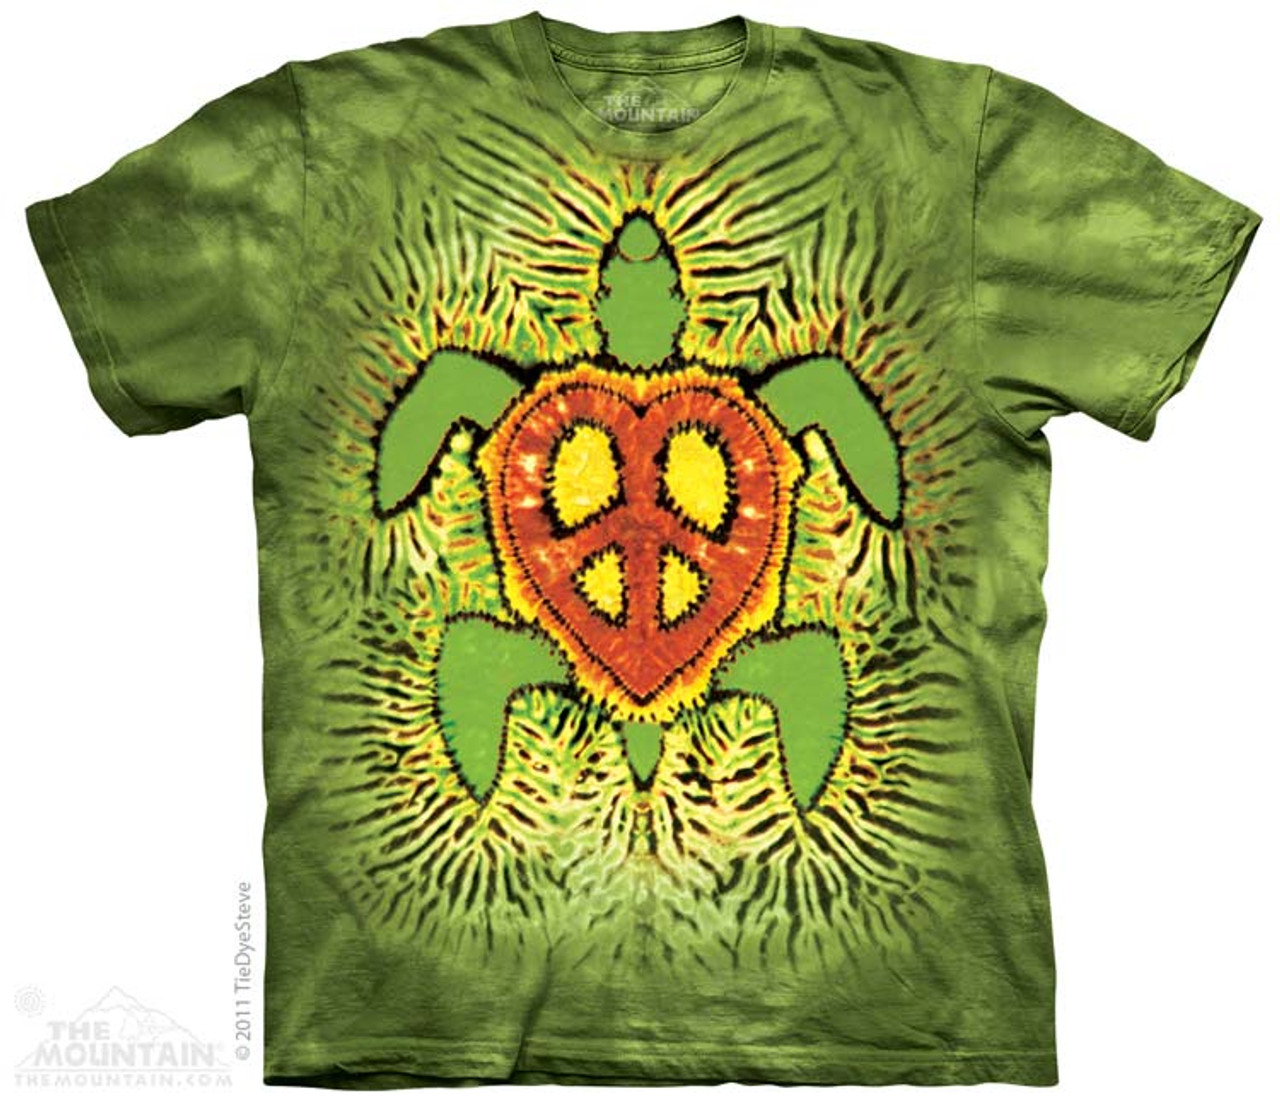 All Sizes 3090 Tie Dye Peace Symbol The Mountain T-Shirt